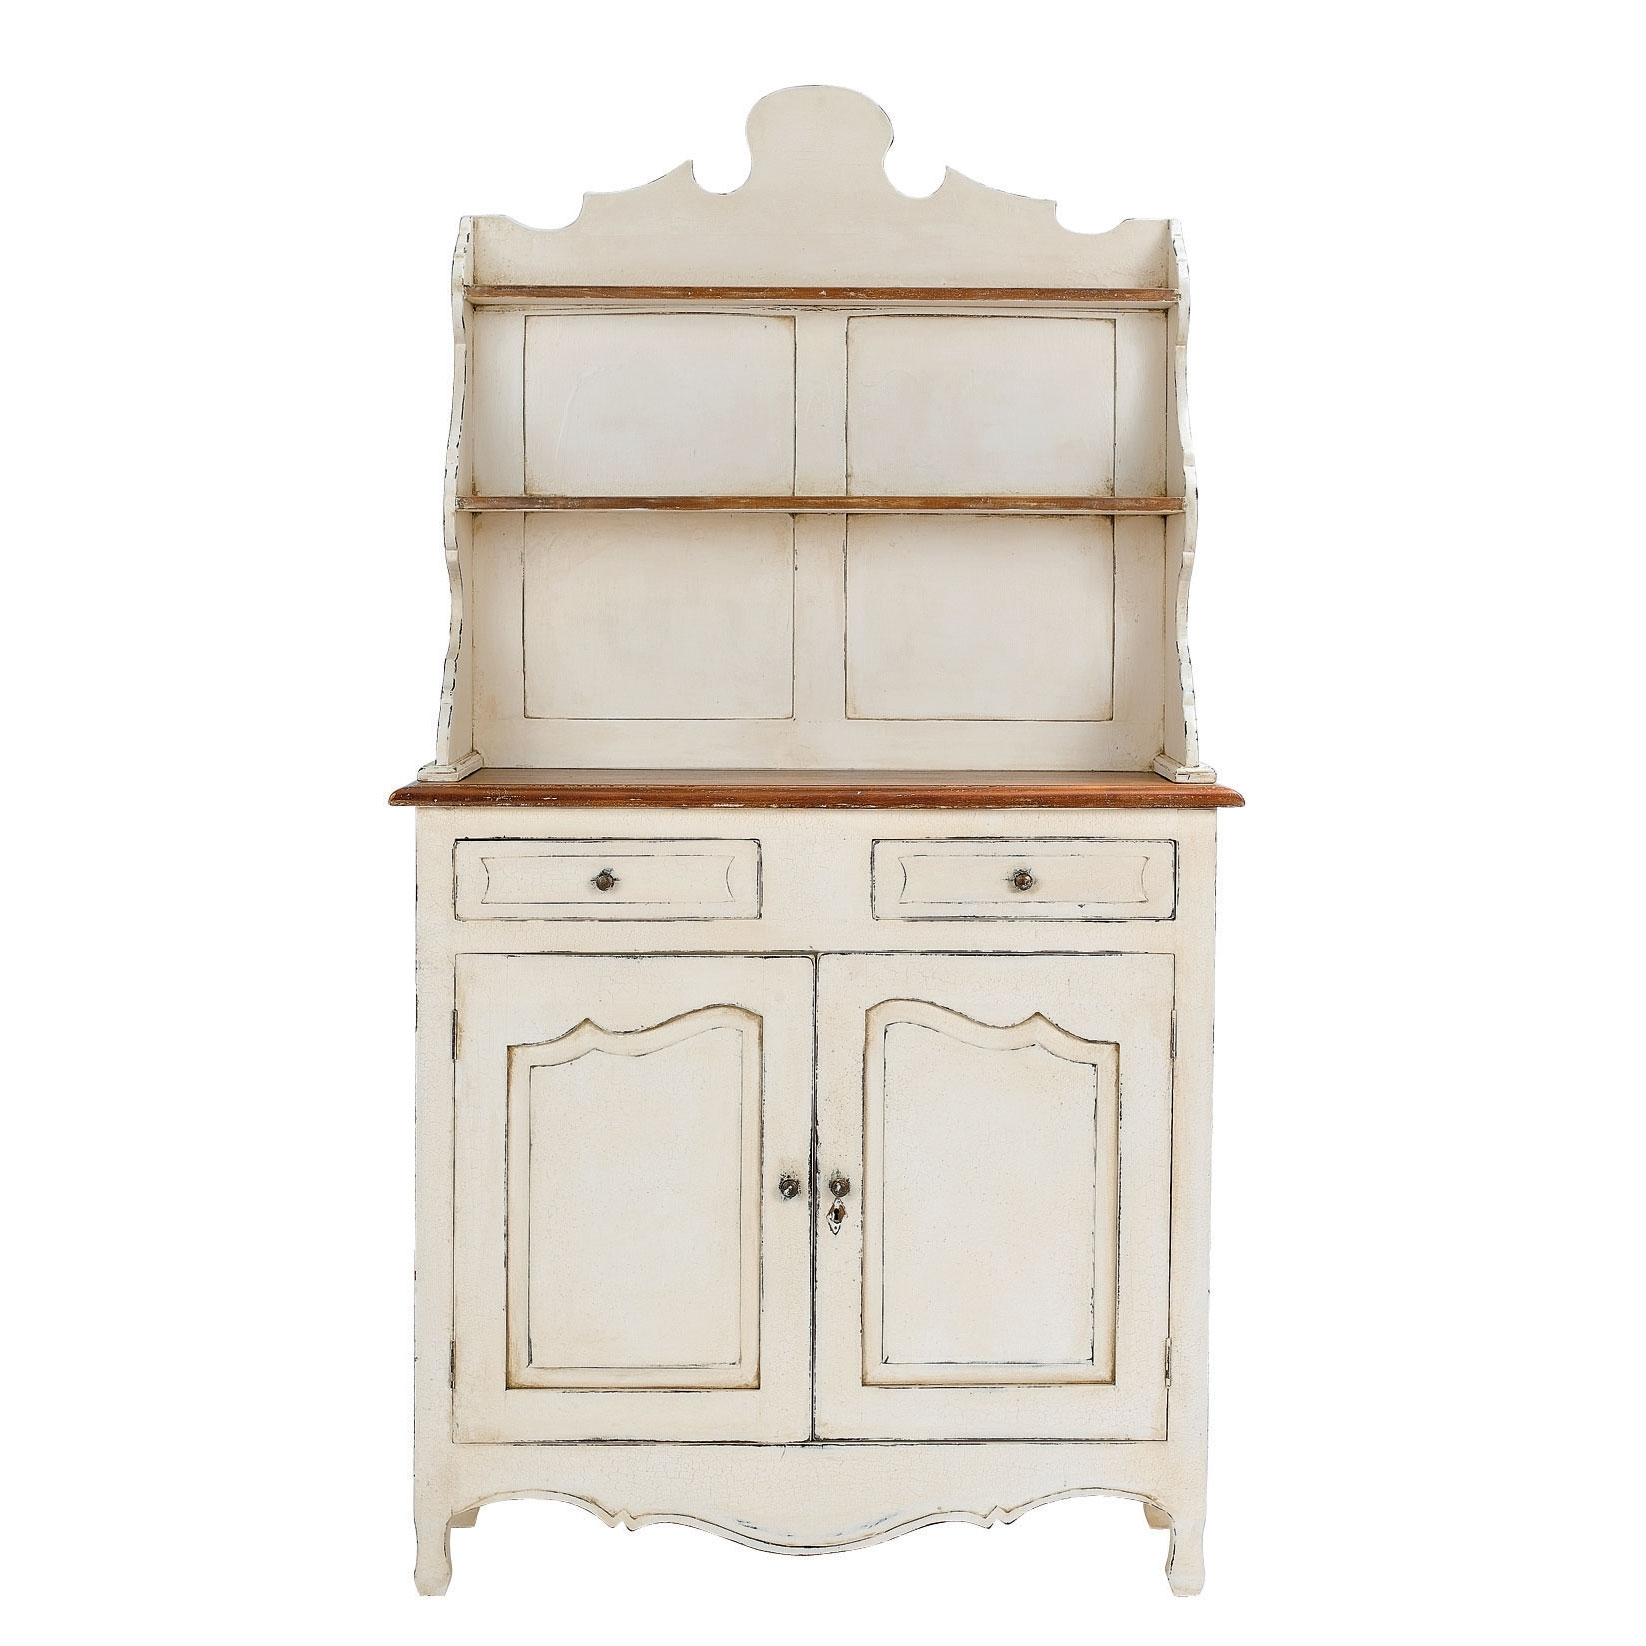 Best Kitchen Dressers For Displaying And Storing Your Tableware intended for Vintage 8 Glass Sideboards (Image 5 of 30)